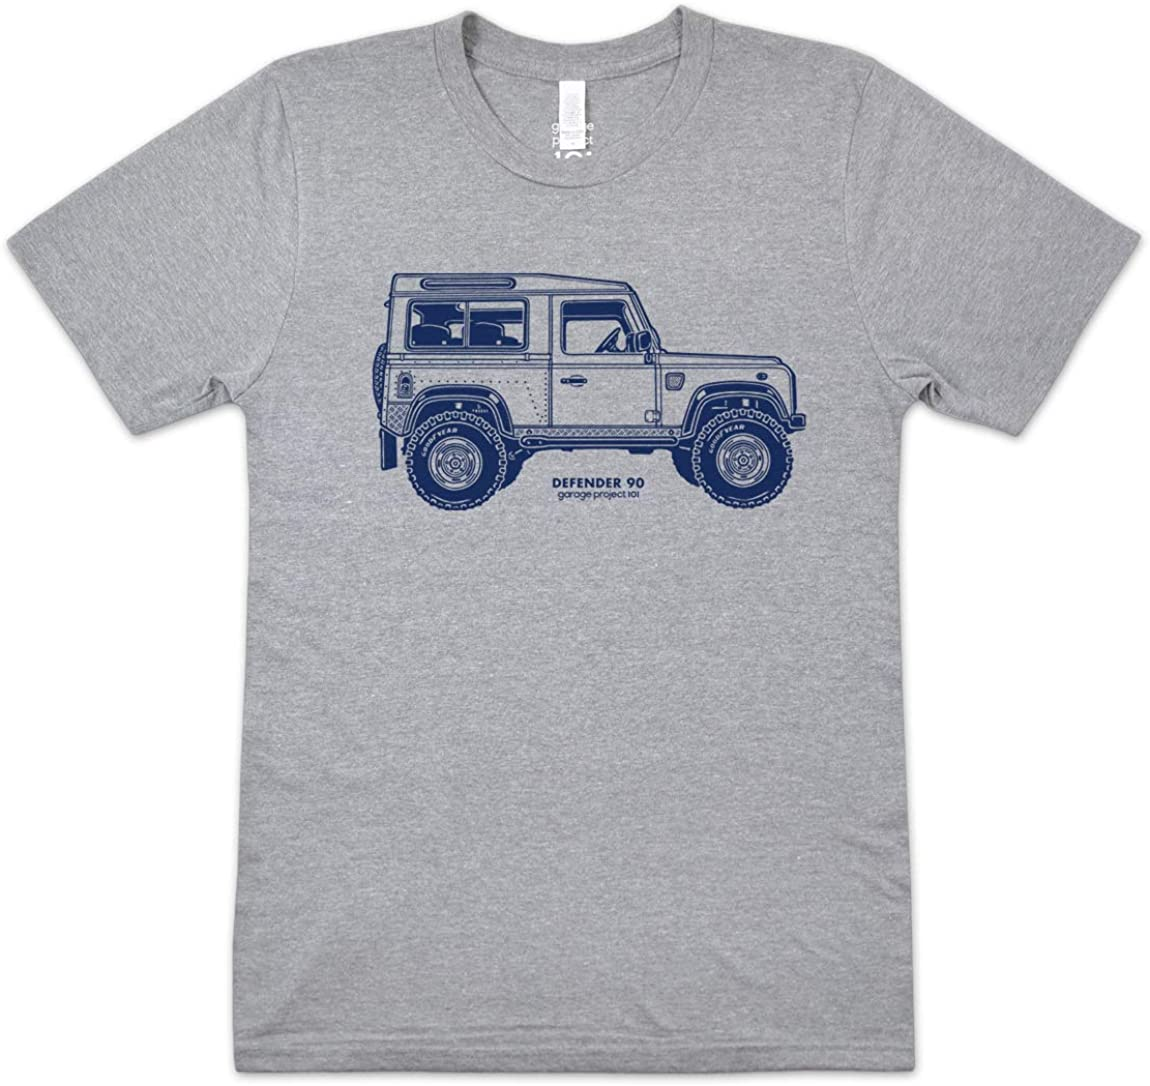 GarageProject101 Classic Defender Side T-Shirt